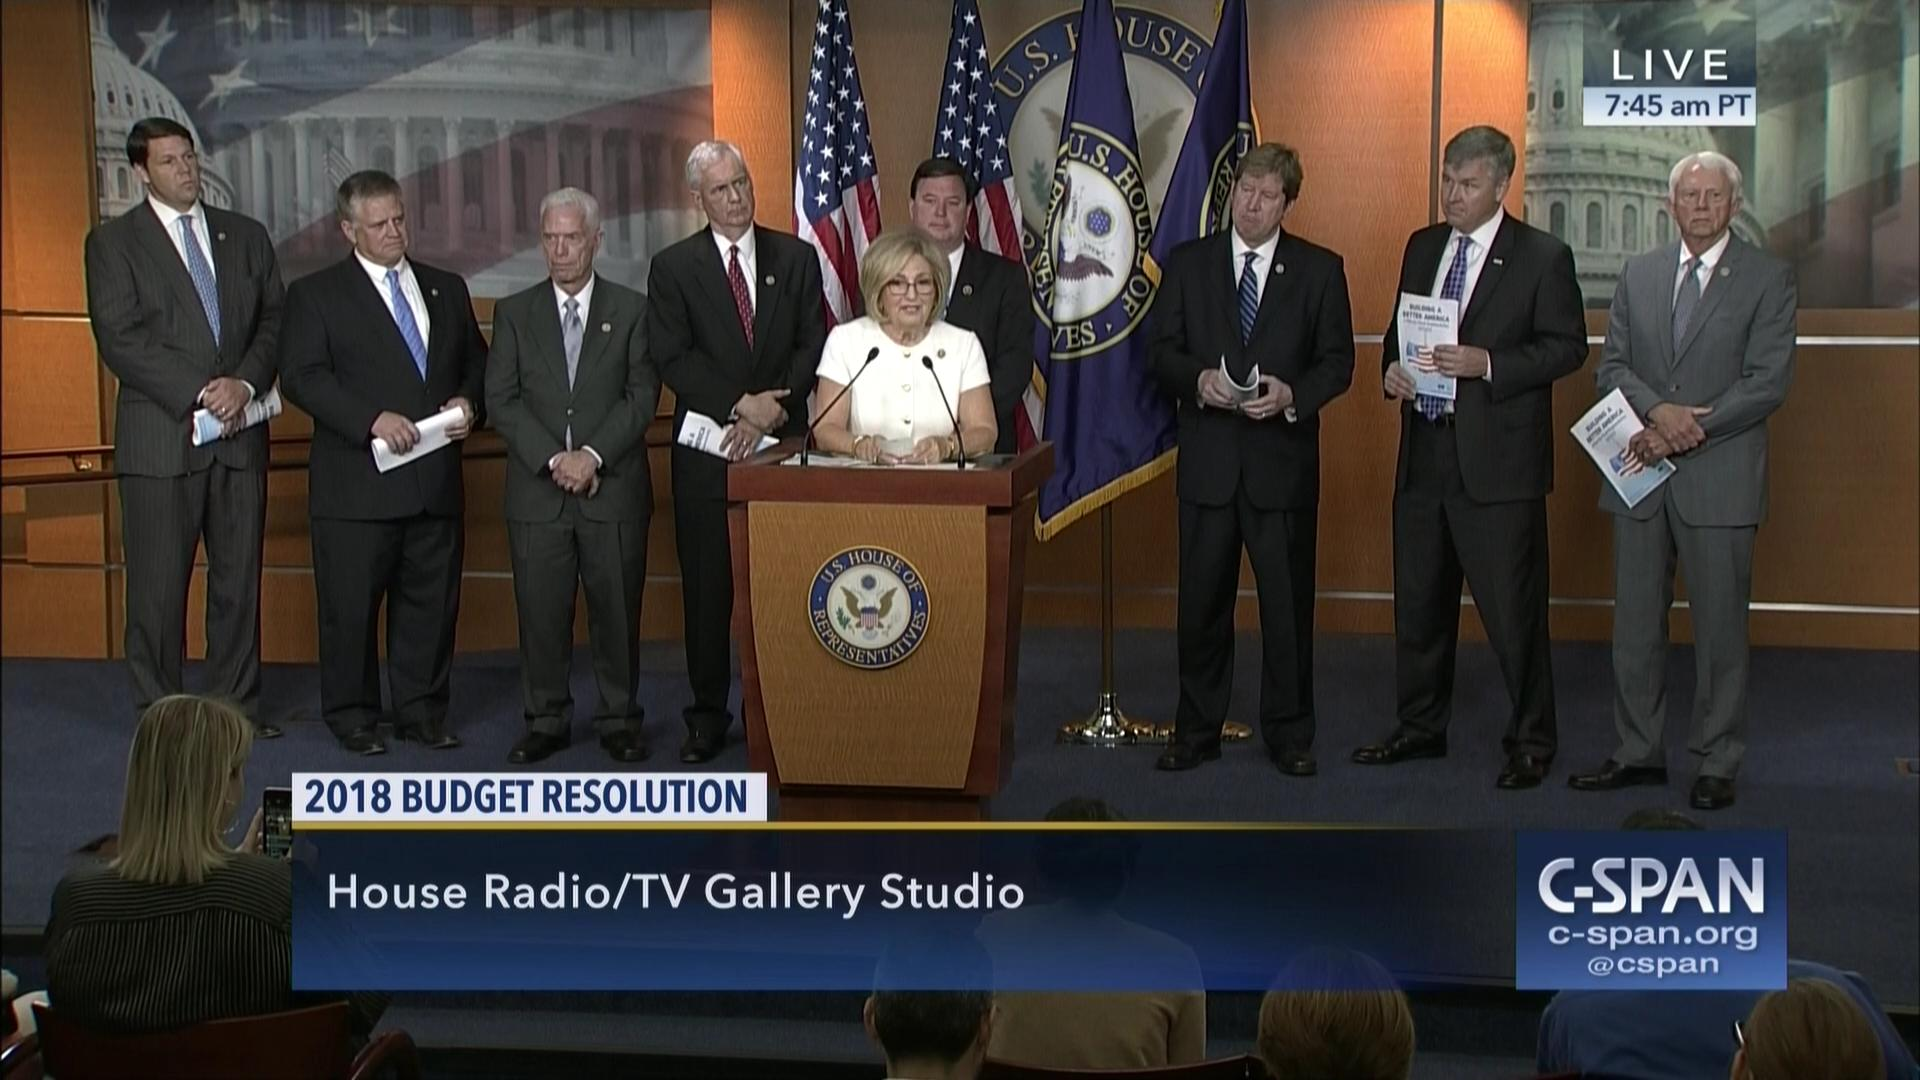 House Bud mittee Republicans Hold News Conference Jul